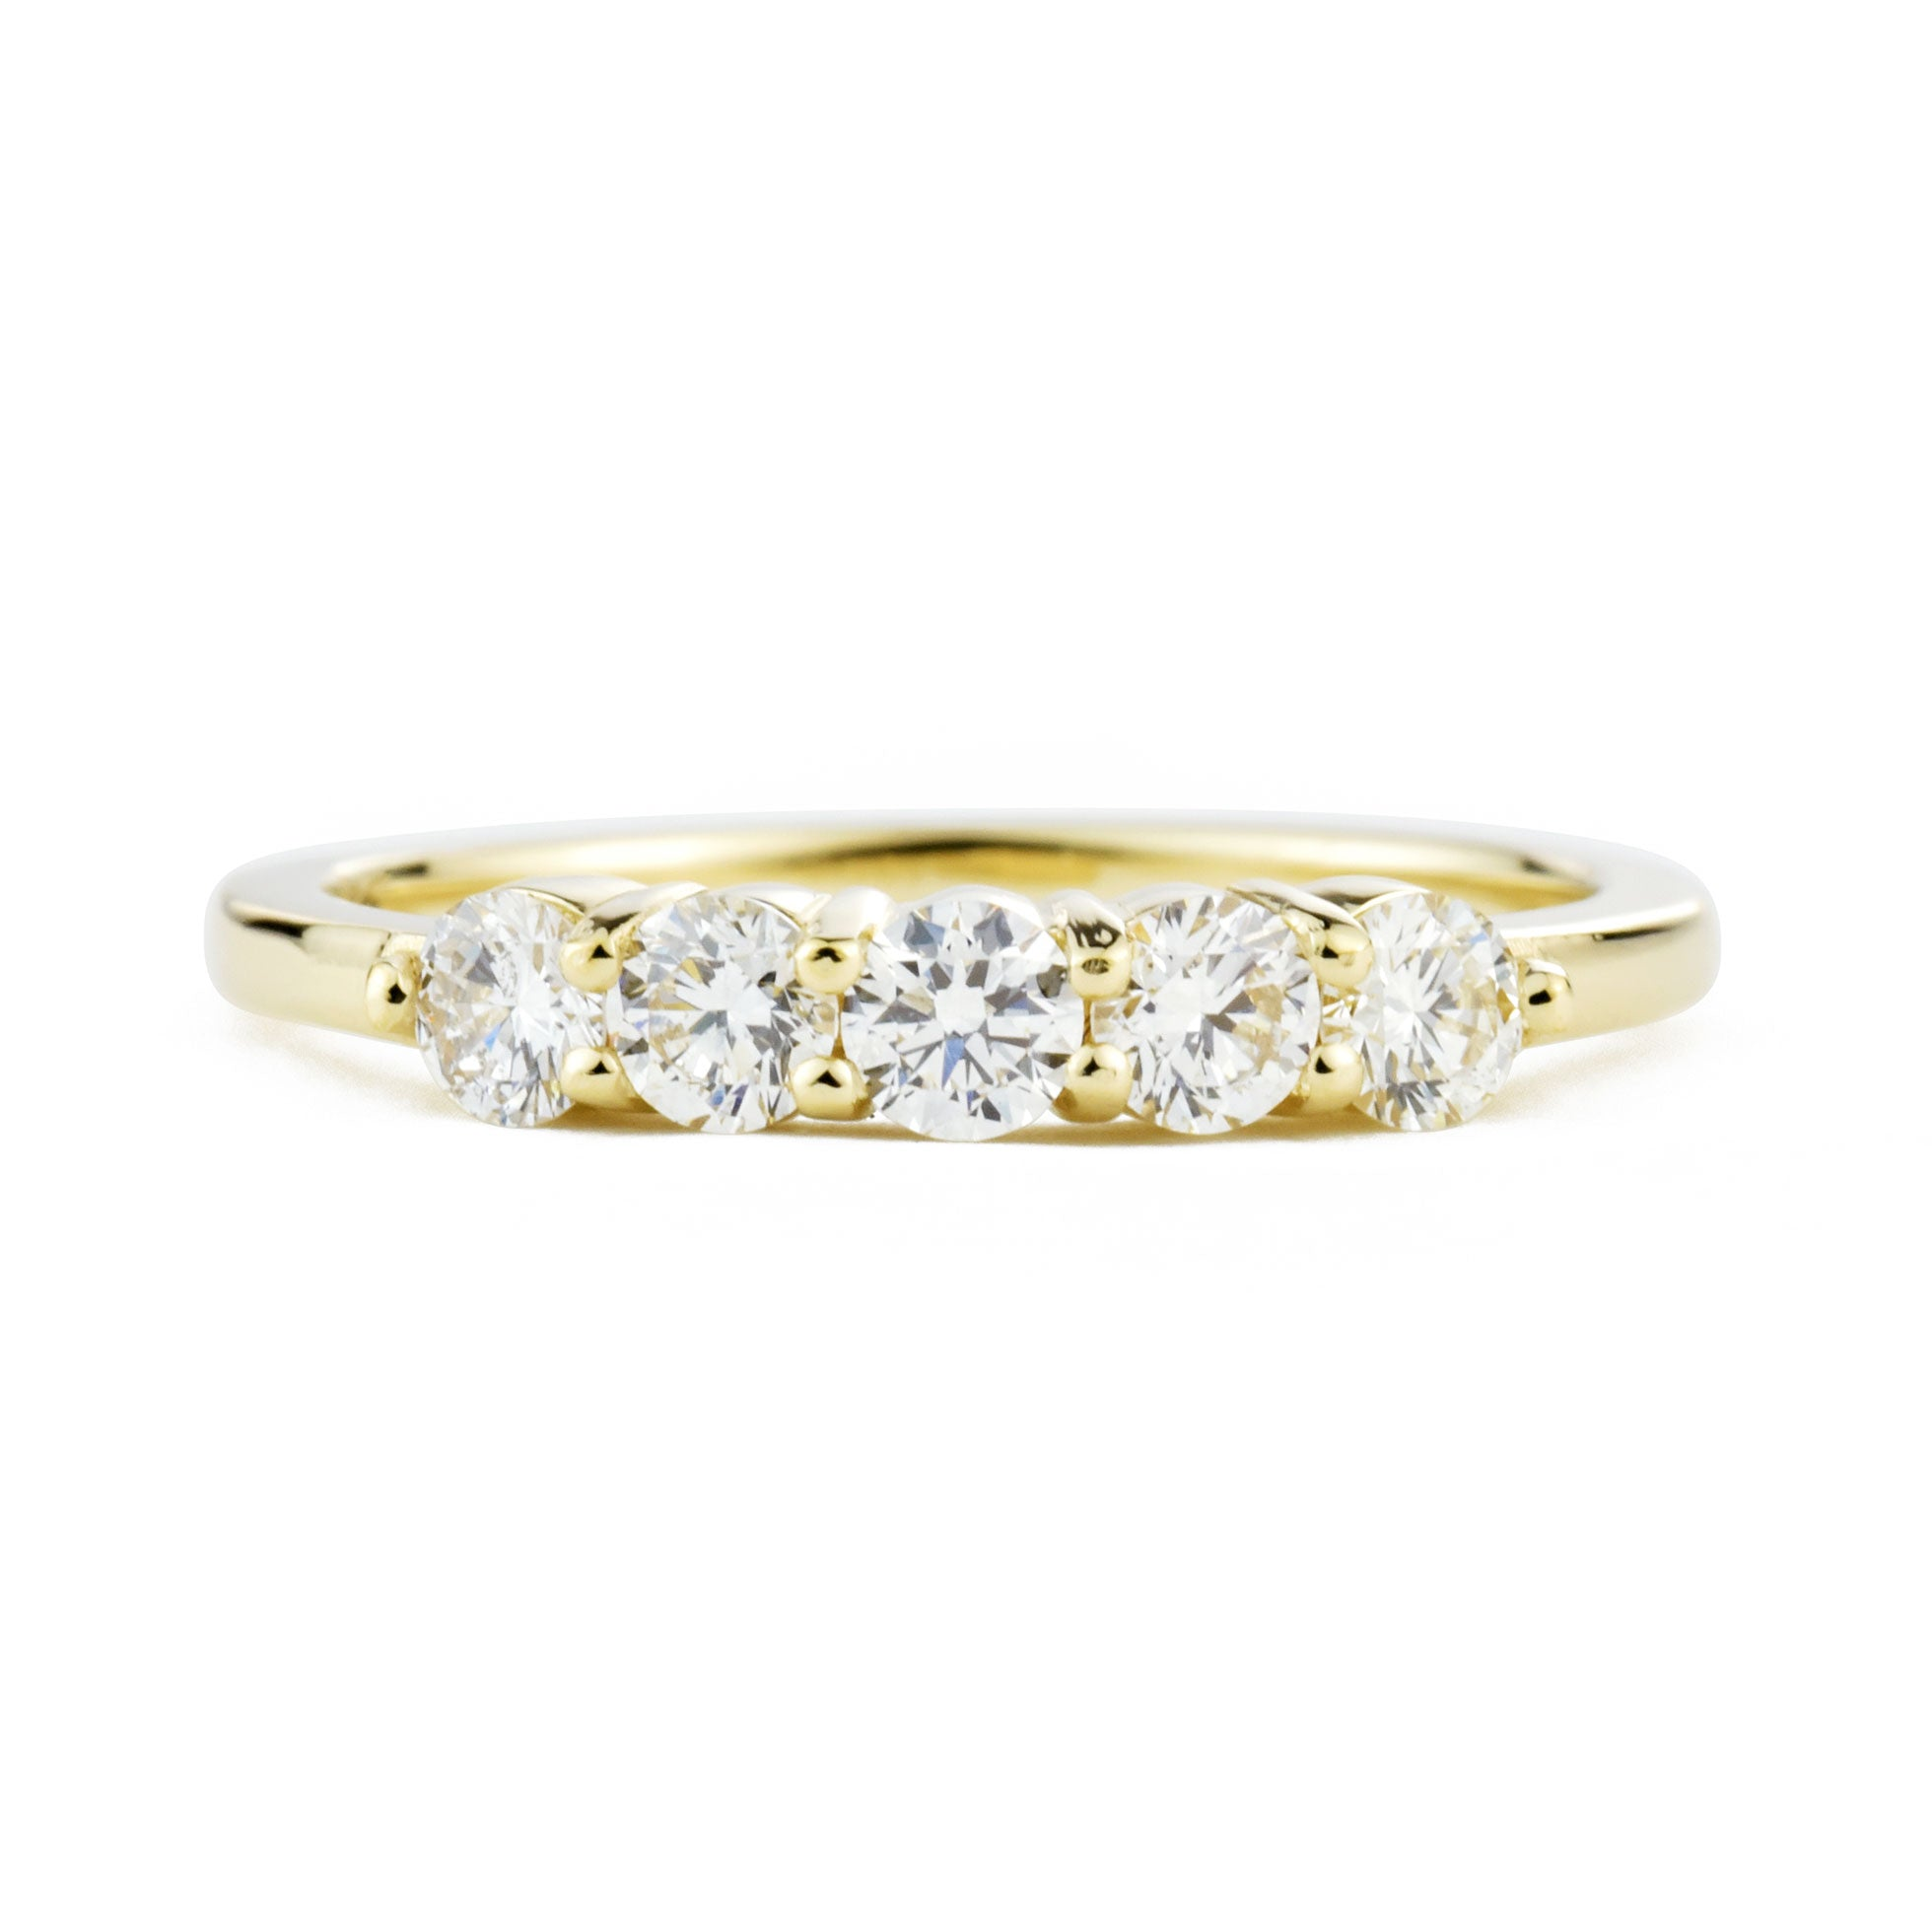 Lily Five Stone Diamond Ring in yellow gold shown from the front